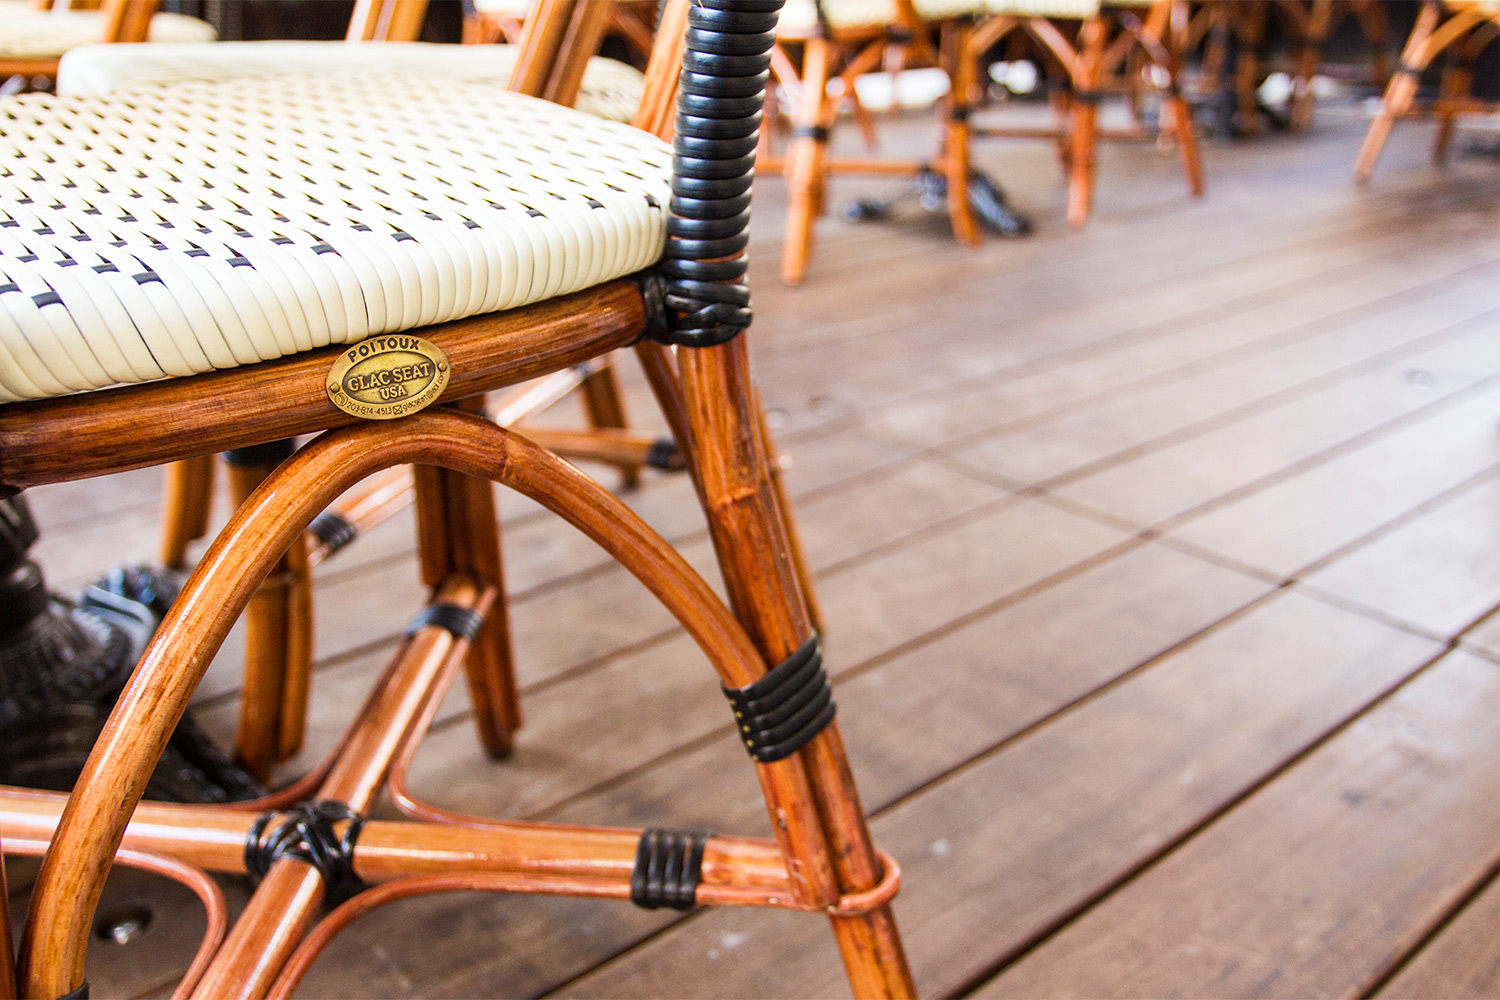 Detail view of a terrace chair on Ipe wood floor. Structure of the assembled wooden chair with woven rattan. Cannage mostly white and black detail.